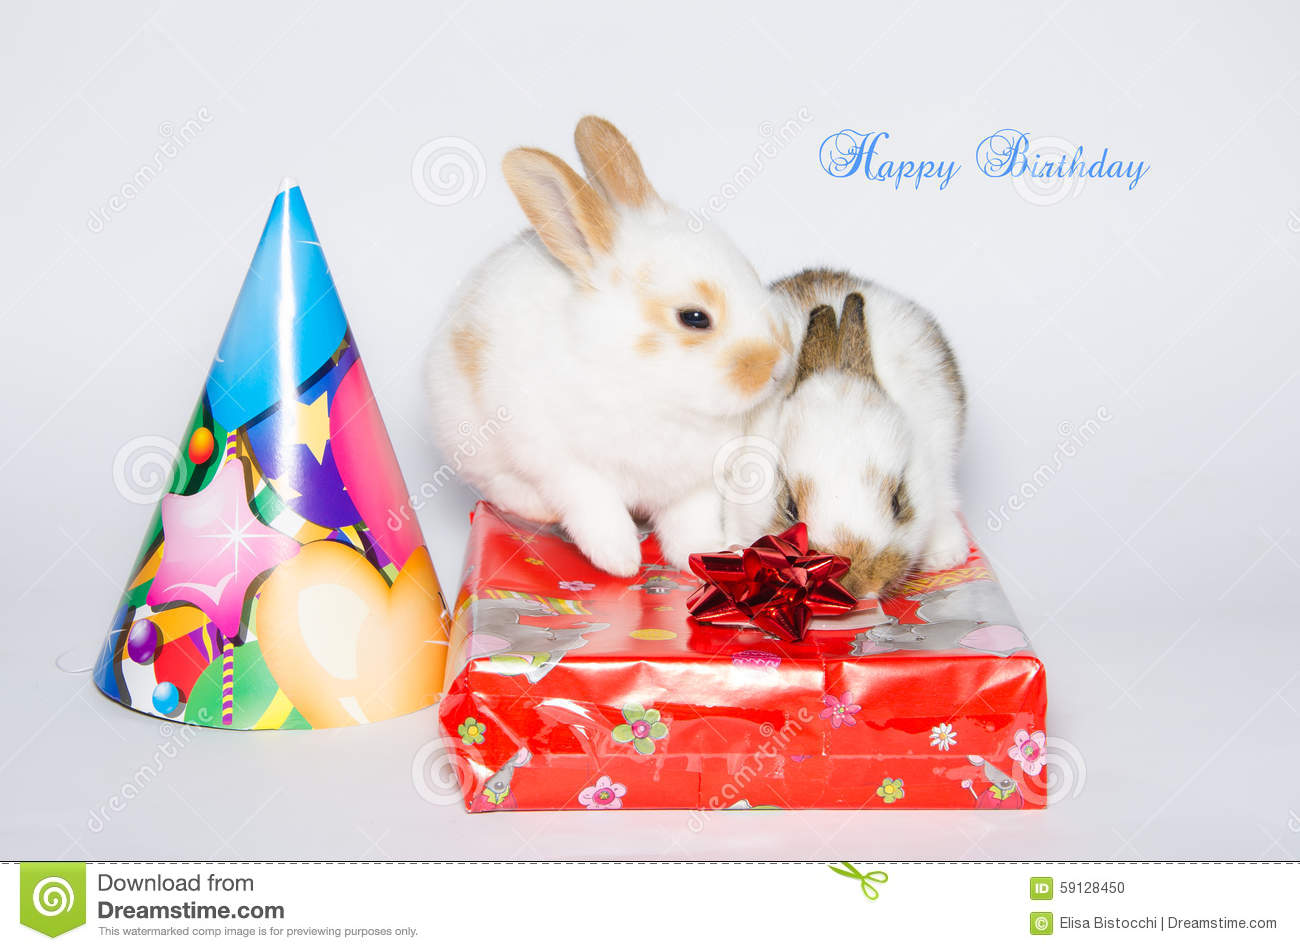 Funny Happy Birthday Card With Rabbits